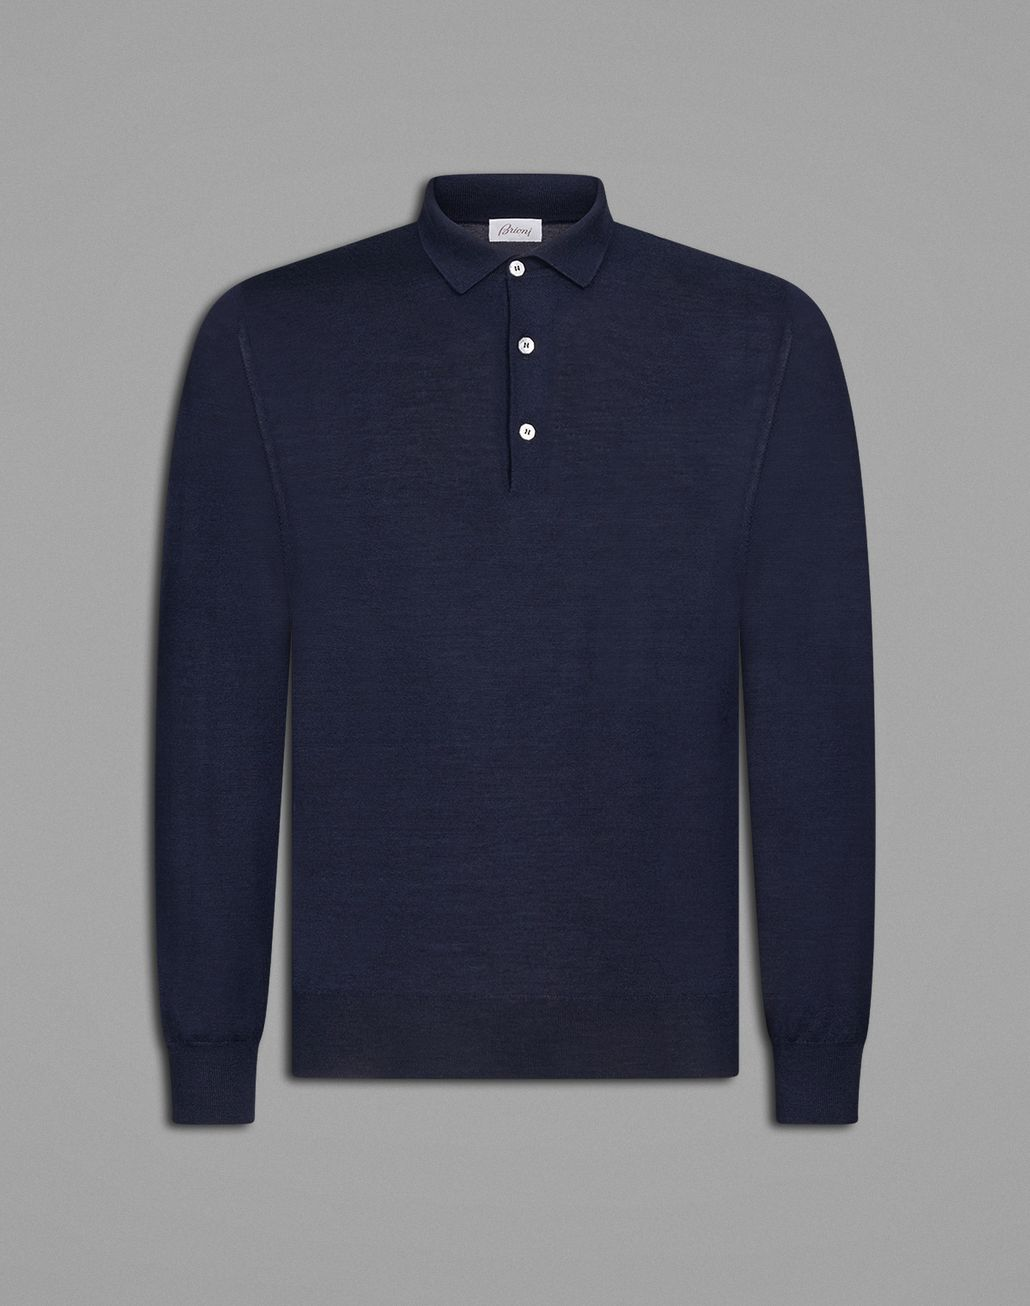 BRIONI 'Essential' Navy Blue Long Sleeved Polo Shirt T-Shirts & Polos [*** pickupInStoreShippingNotGuaranteed_info ***] f